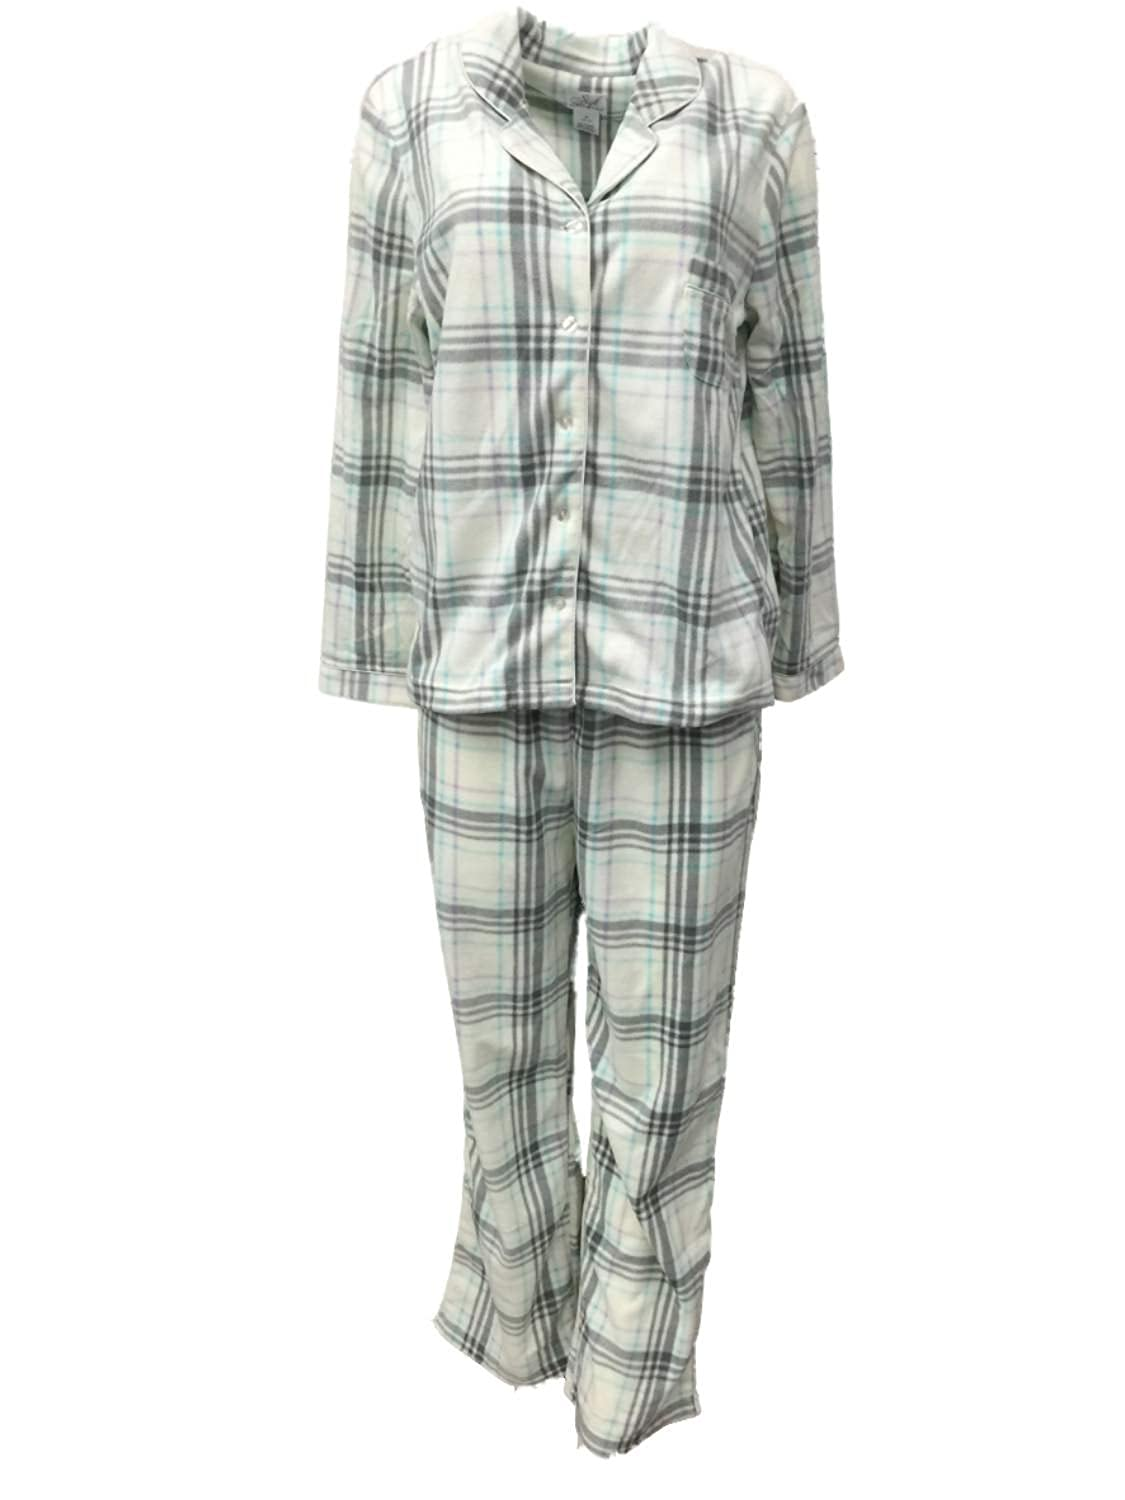 Soft Sensations Womens Ivory Purple   Gray Plaid Fleece Pajamas PJs Sleep  Set at Amazon Women s Clothing store  70738a4bd